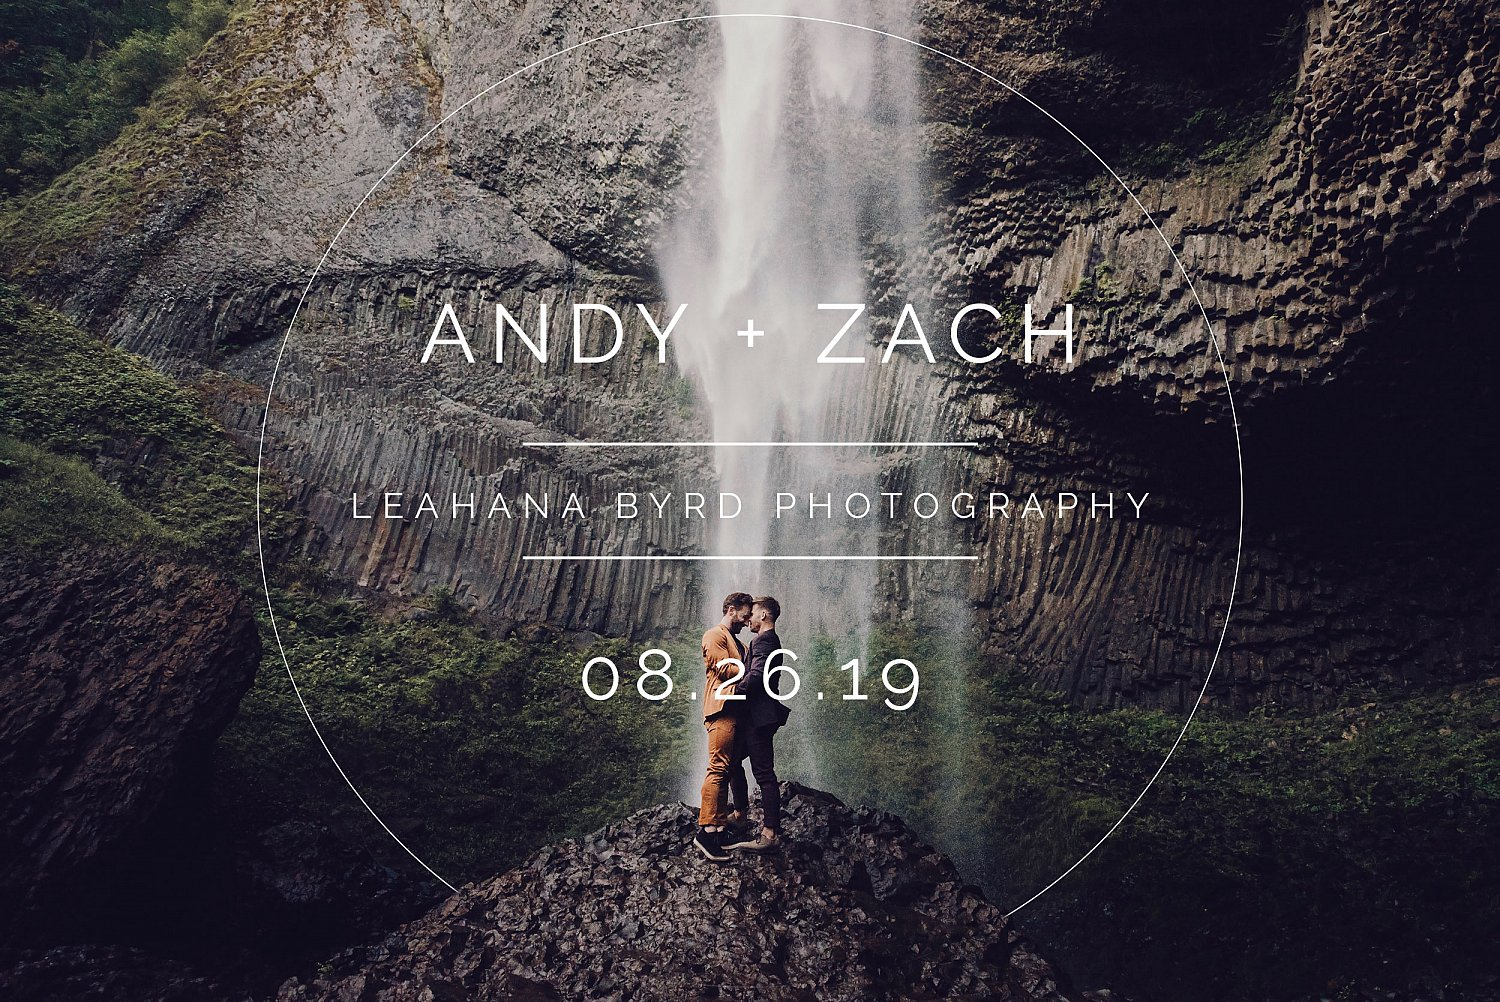 Andy & Zach's Waterfall Elopement